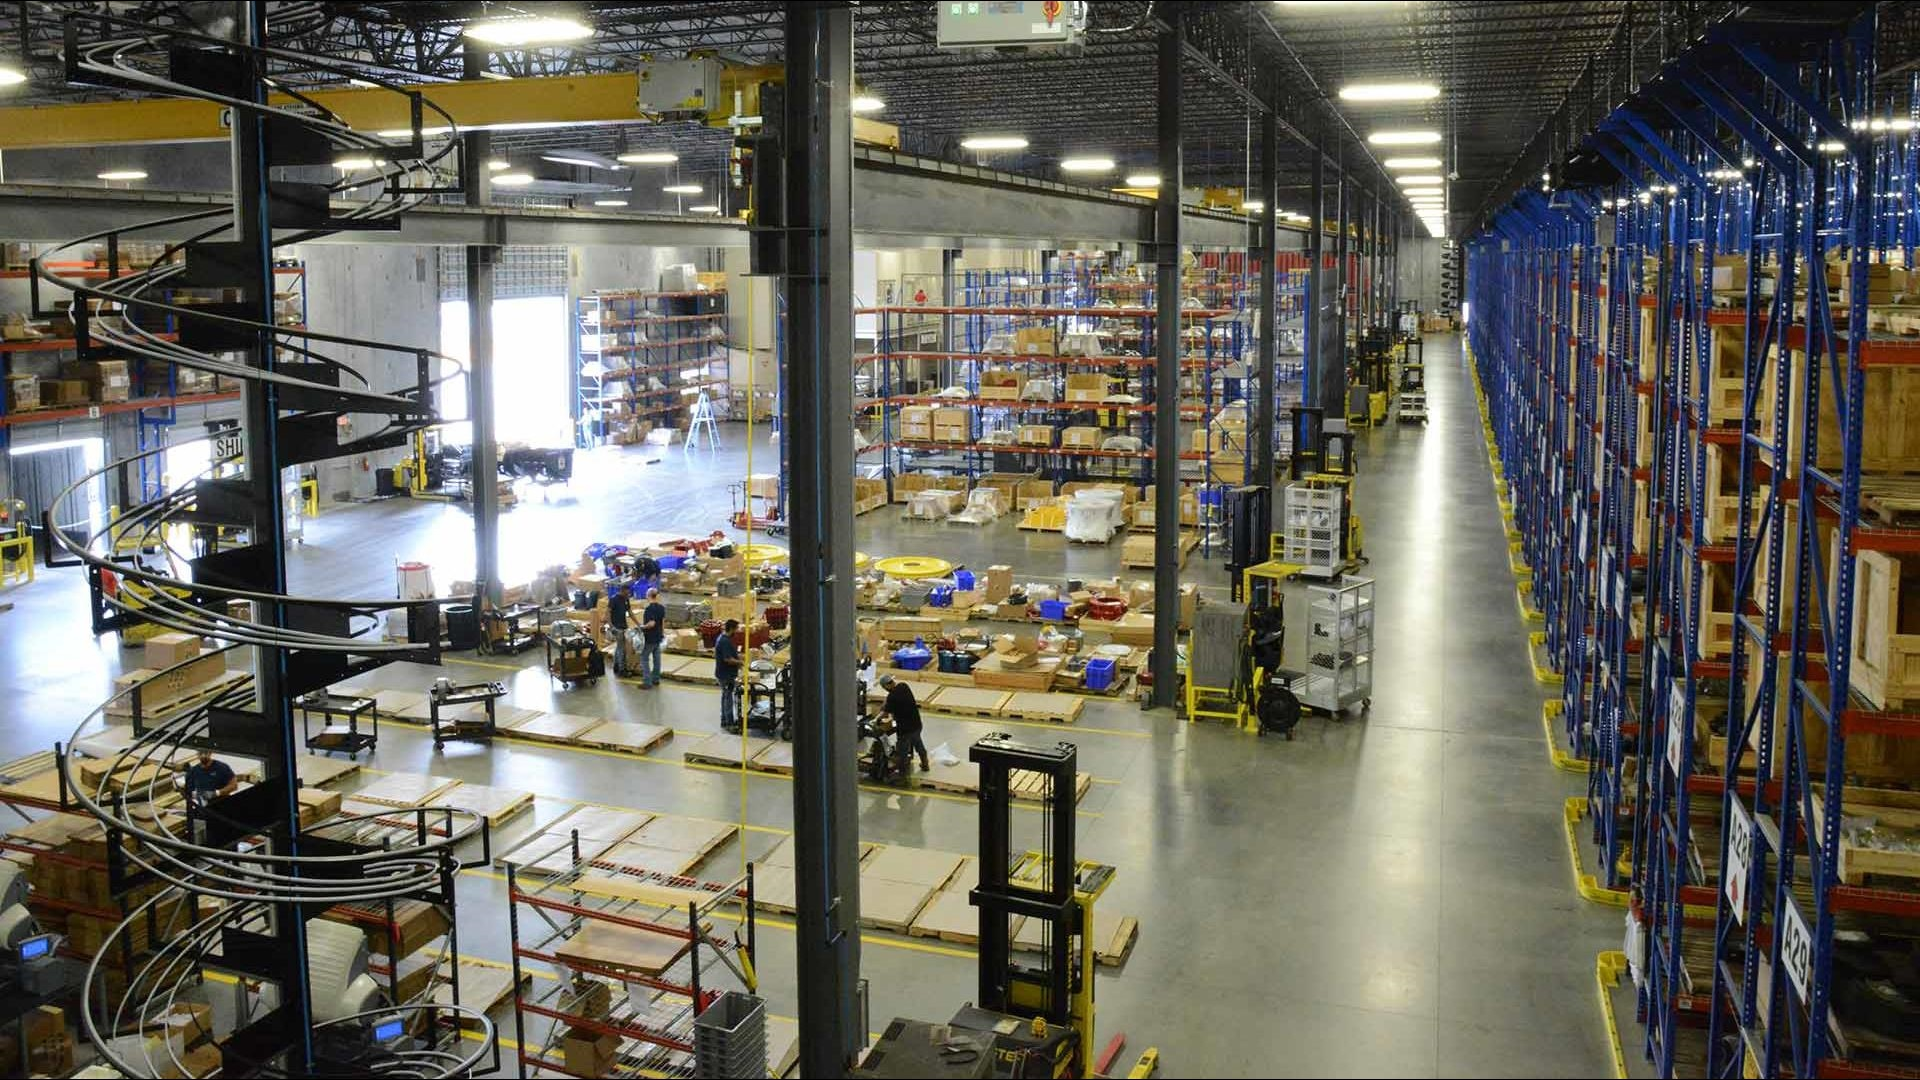 Houston based spares warehouse with over 213,000 square feet of space and dedicated climate-controlled areas.